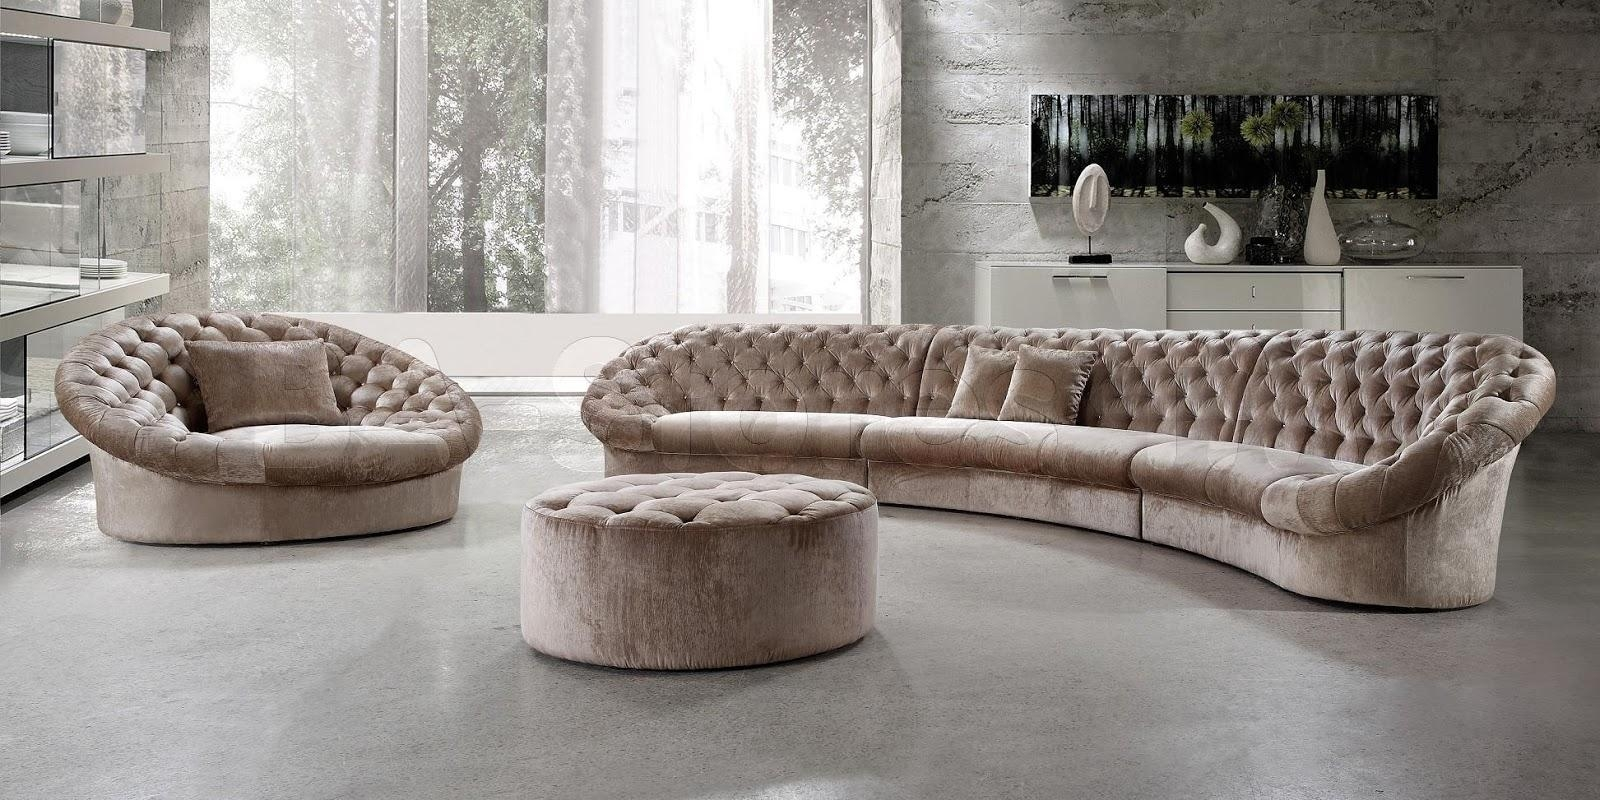 Semi Circular Sectional Sofa With Design Photo 31118 | Kengire With Semi Circular Sectional Sofas (View 4 of 20)